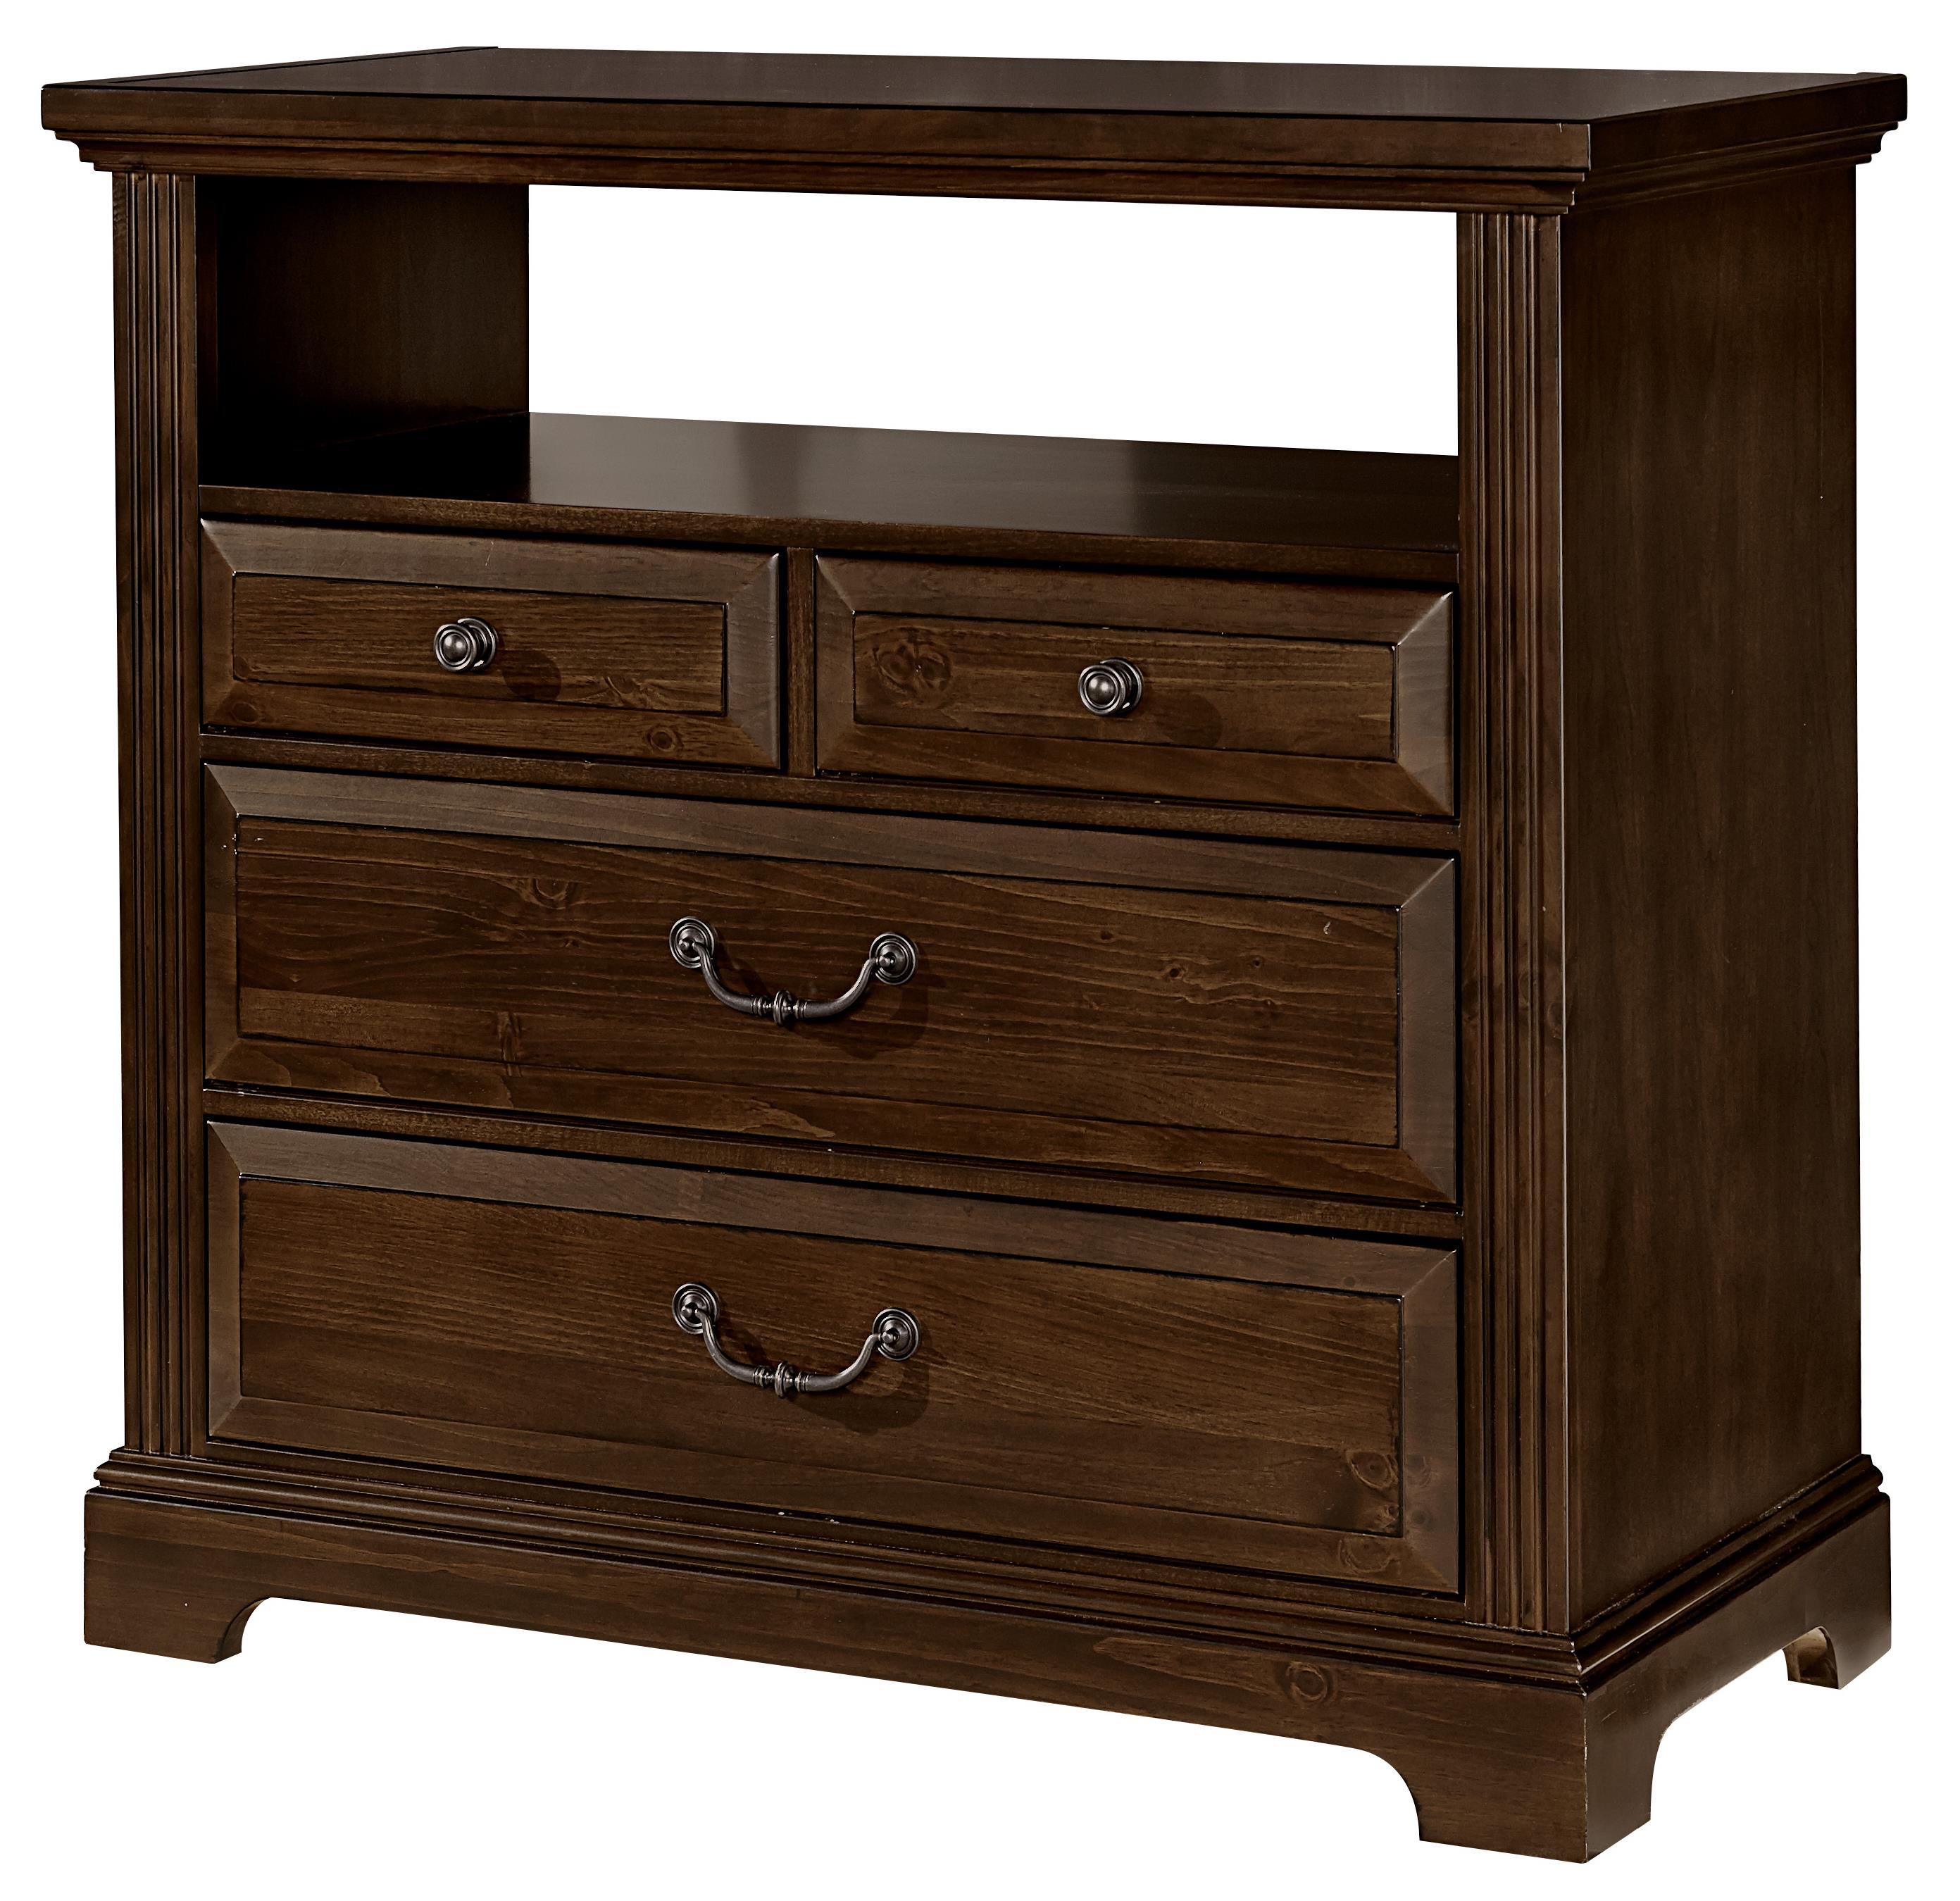 vaughan bassett woodlands transitional media chest 4 drawers belfort furniture media chests. Black Bedroom Furniture Sets. Home Design Ideas